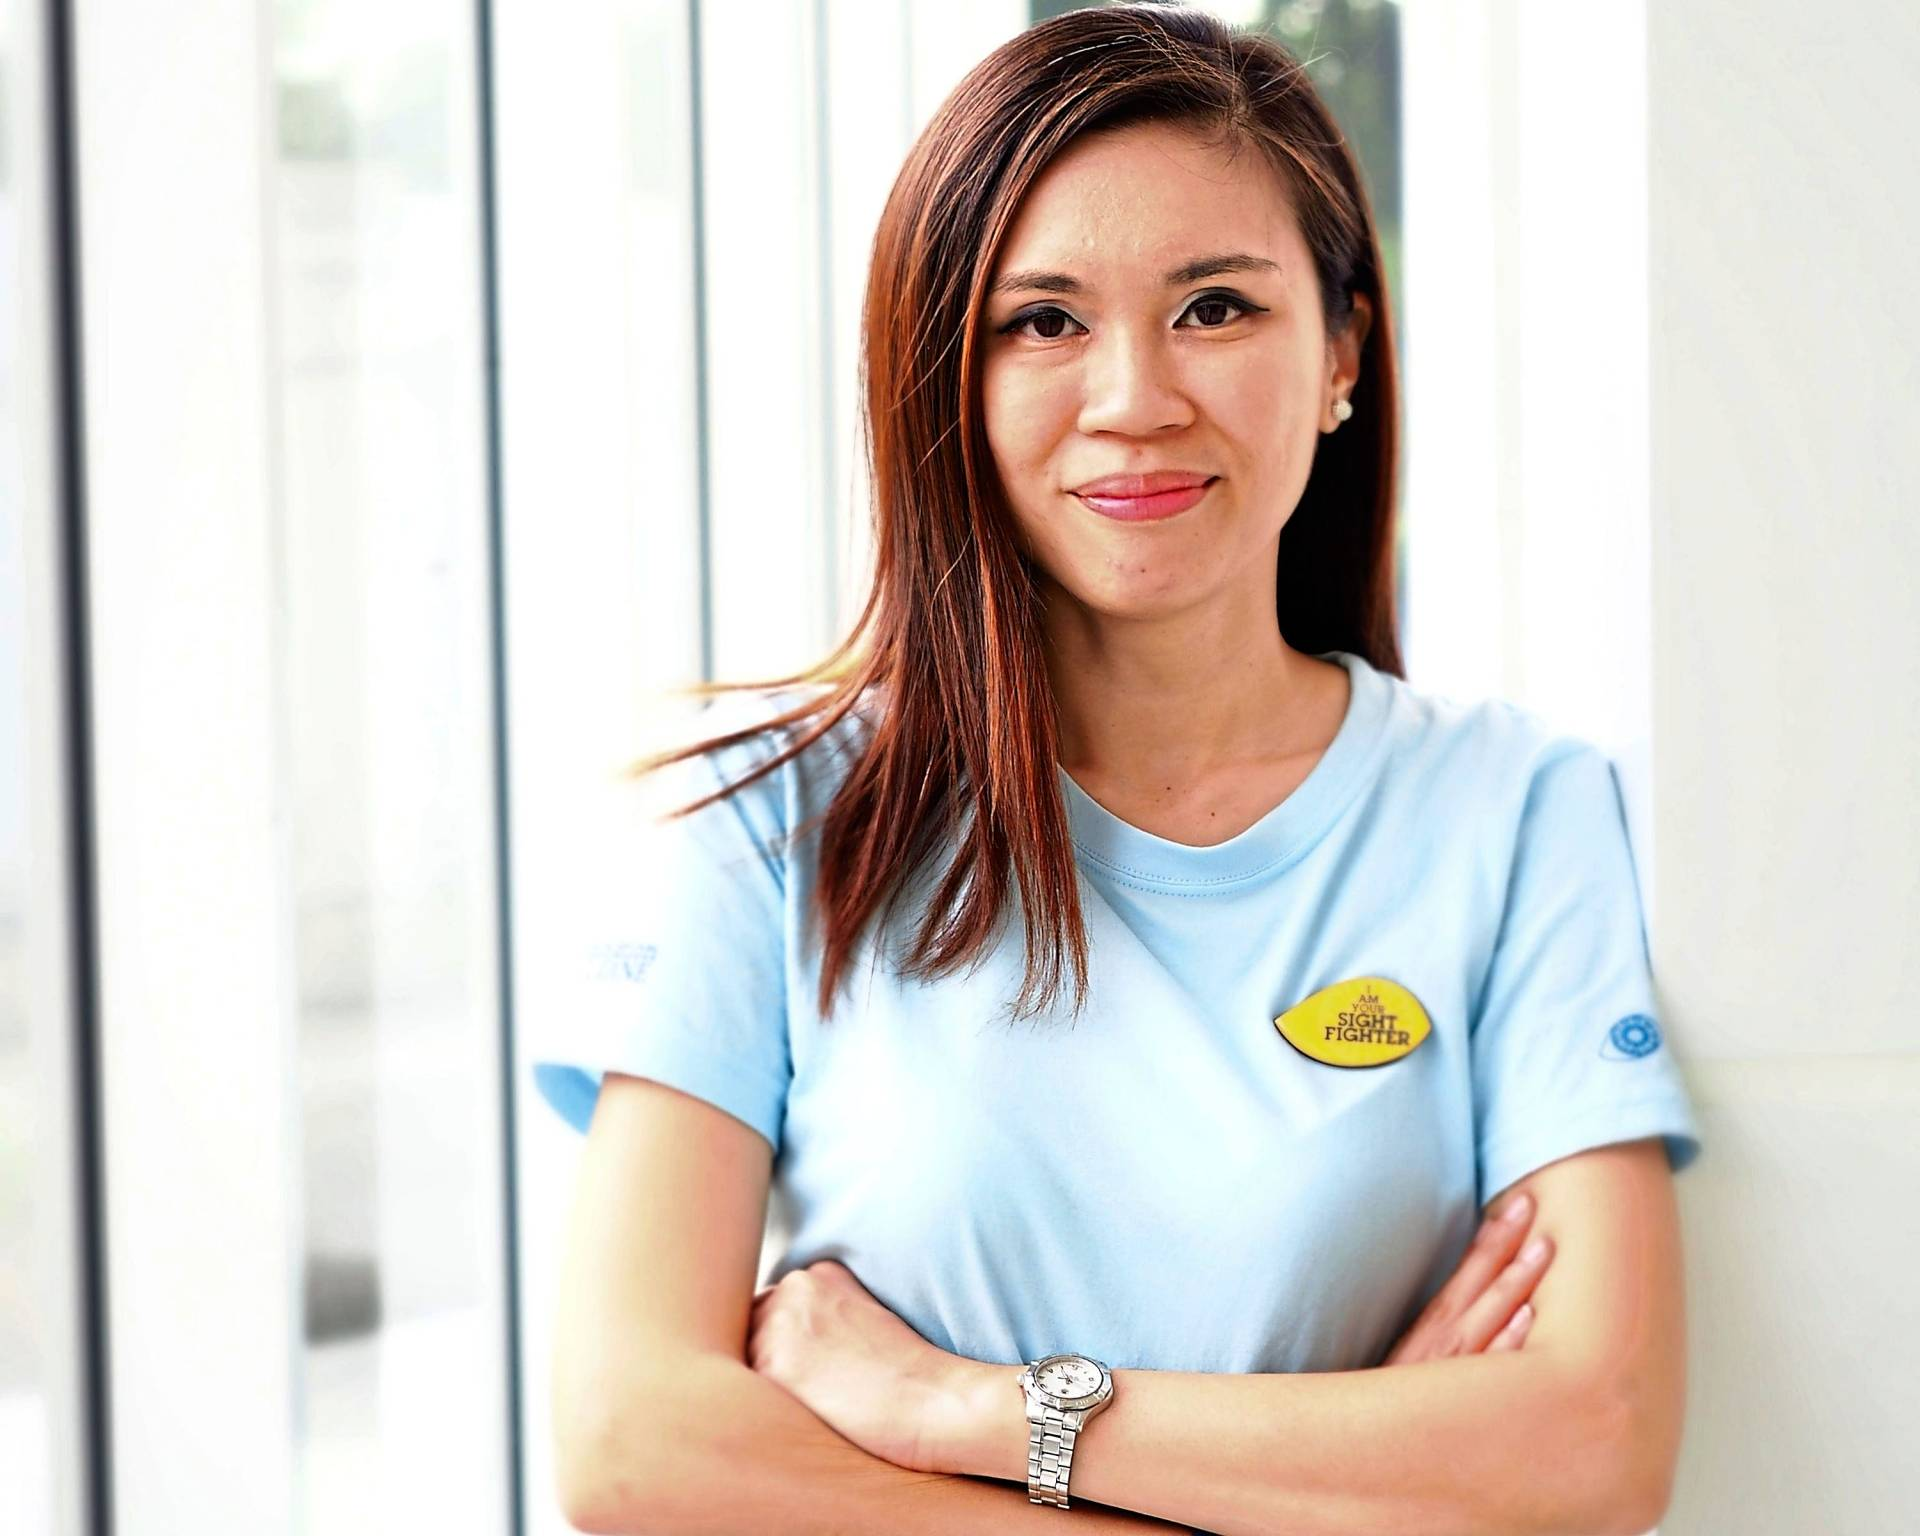 Clarance Boo says over the years, L'Occitane Malaysia and The L'Occitane Foundation team have raised and channelled more than RM714,000 to many different sight saving projects and helped more than 34,000 Malaysians in getting better eye care services. - L'Occitane Malaysia